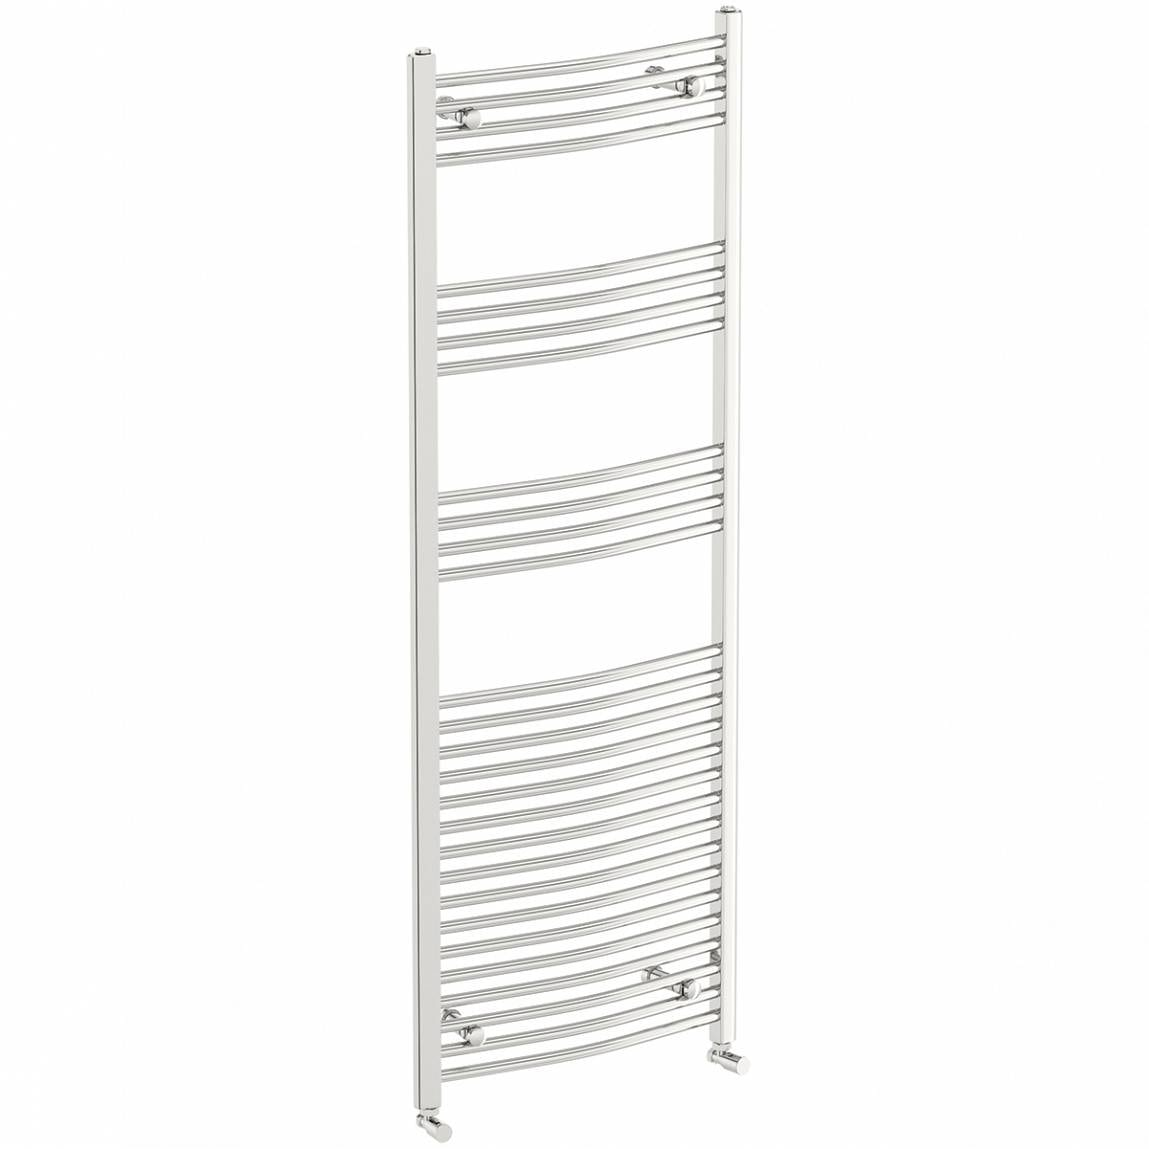 Orchard Elsdon heated towel rail 1650 x 600 offer pack